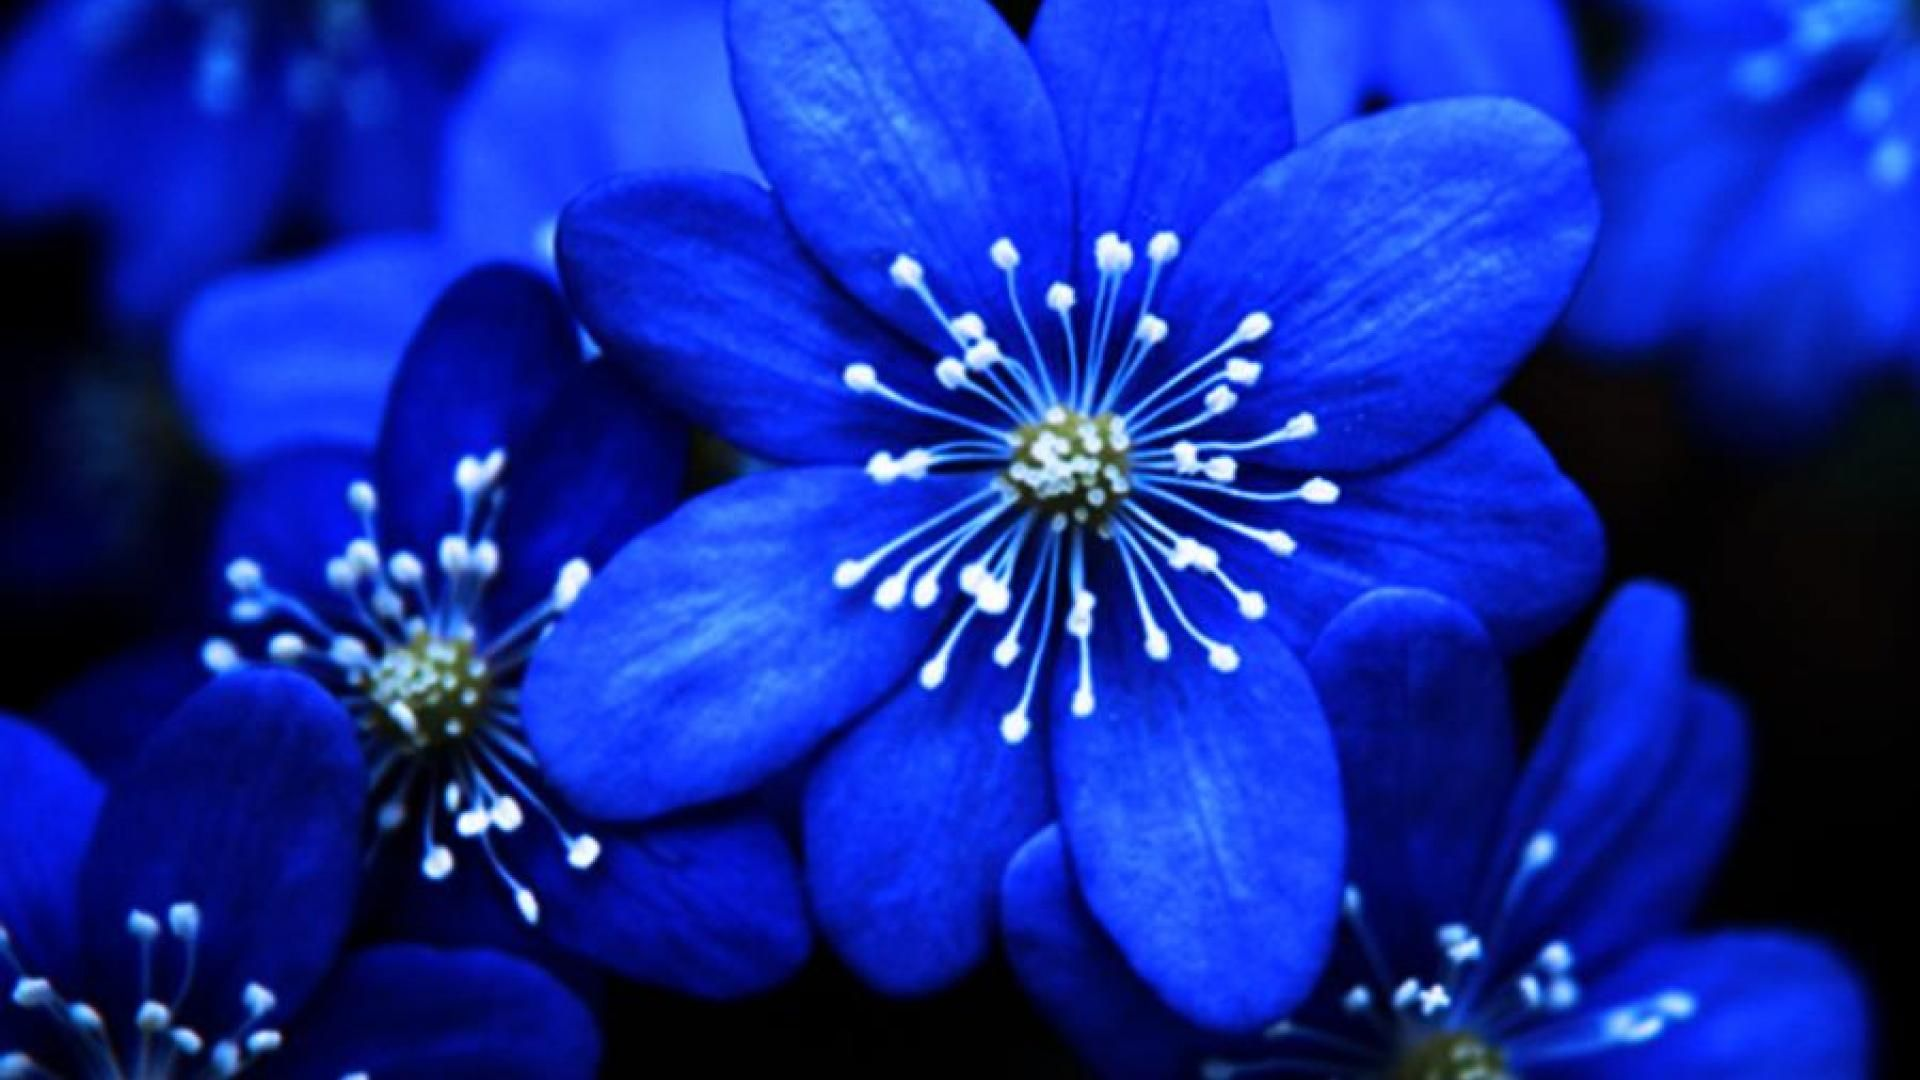 blue flowers images - google search | flowers | pinterest | blue